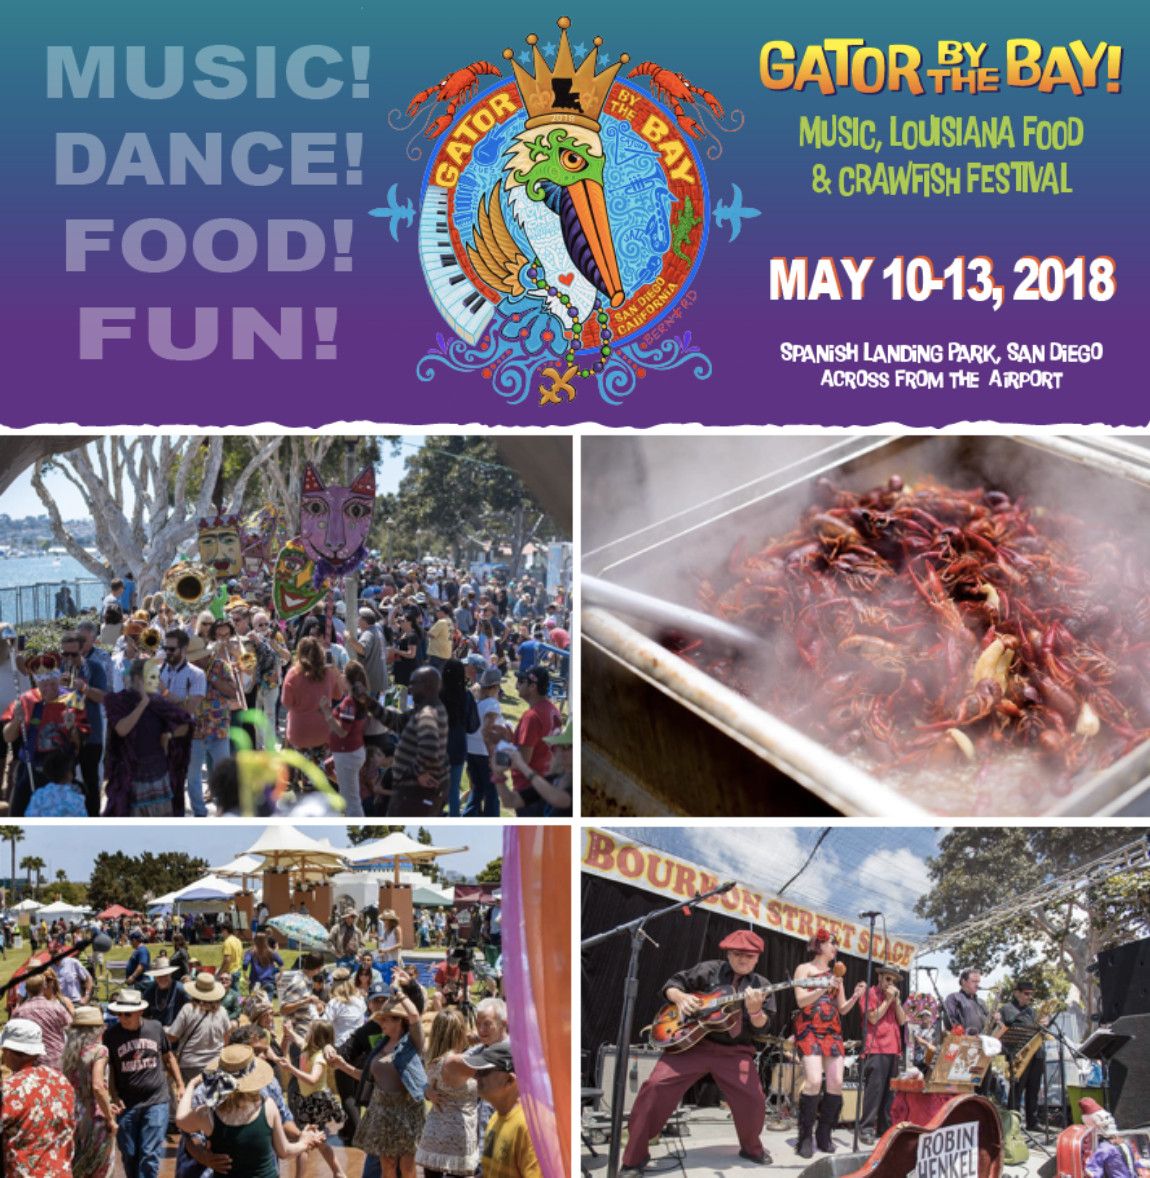 46 reviews of Gator By The Bay